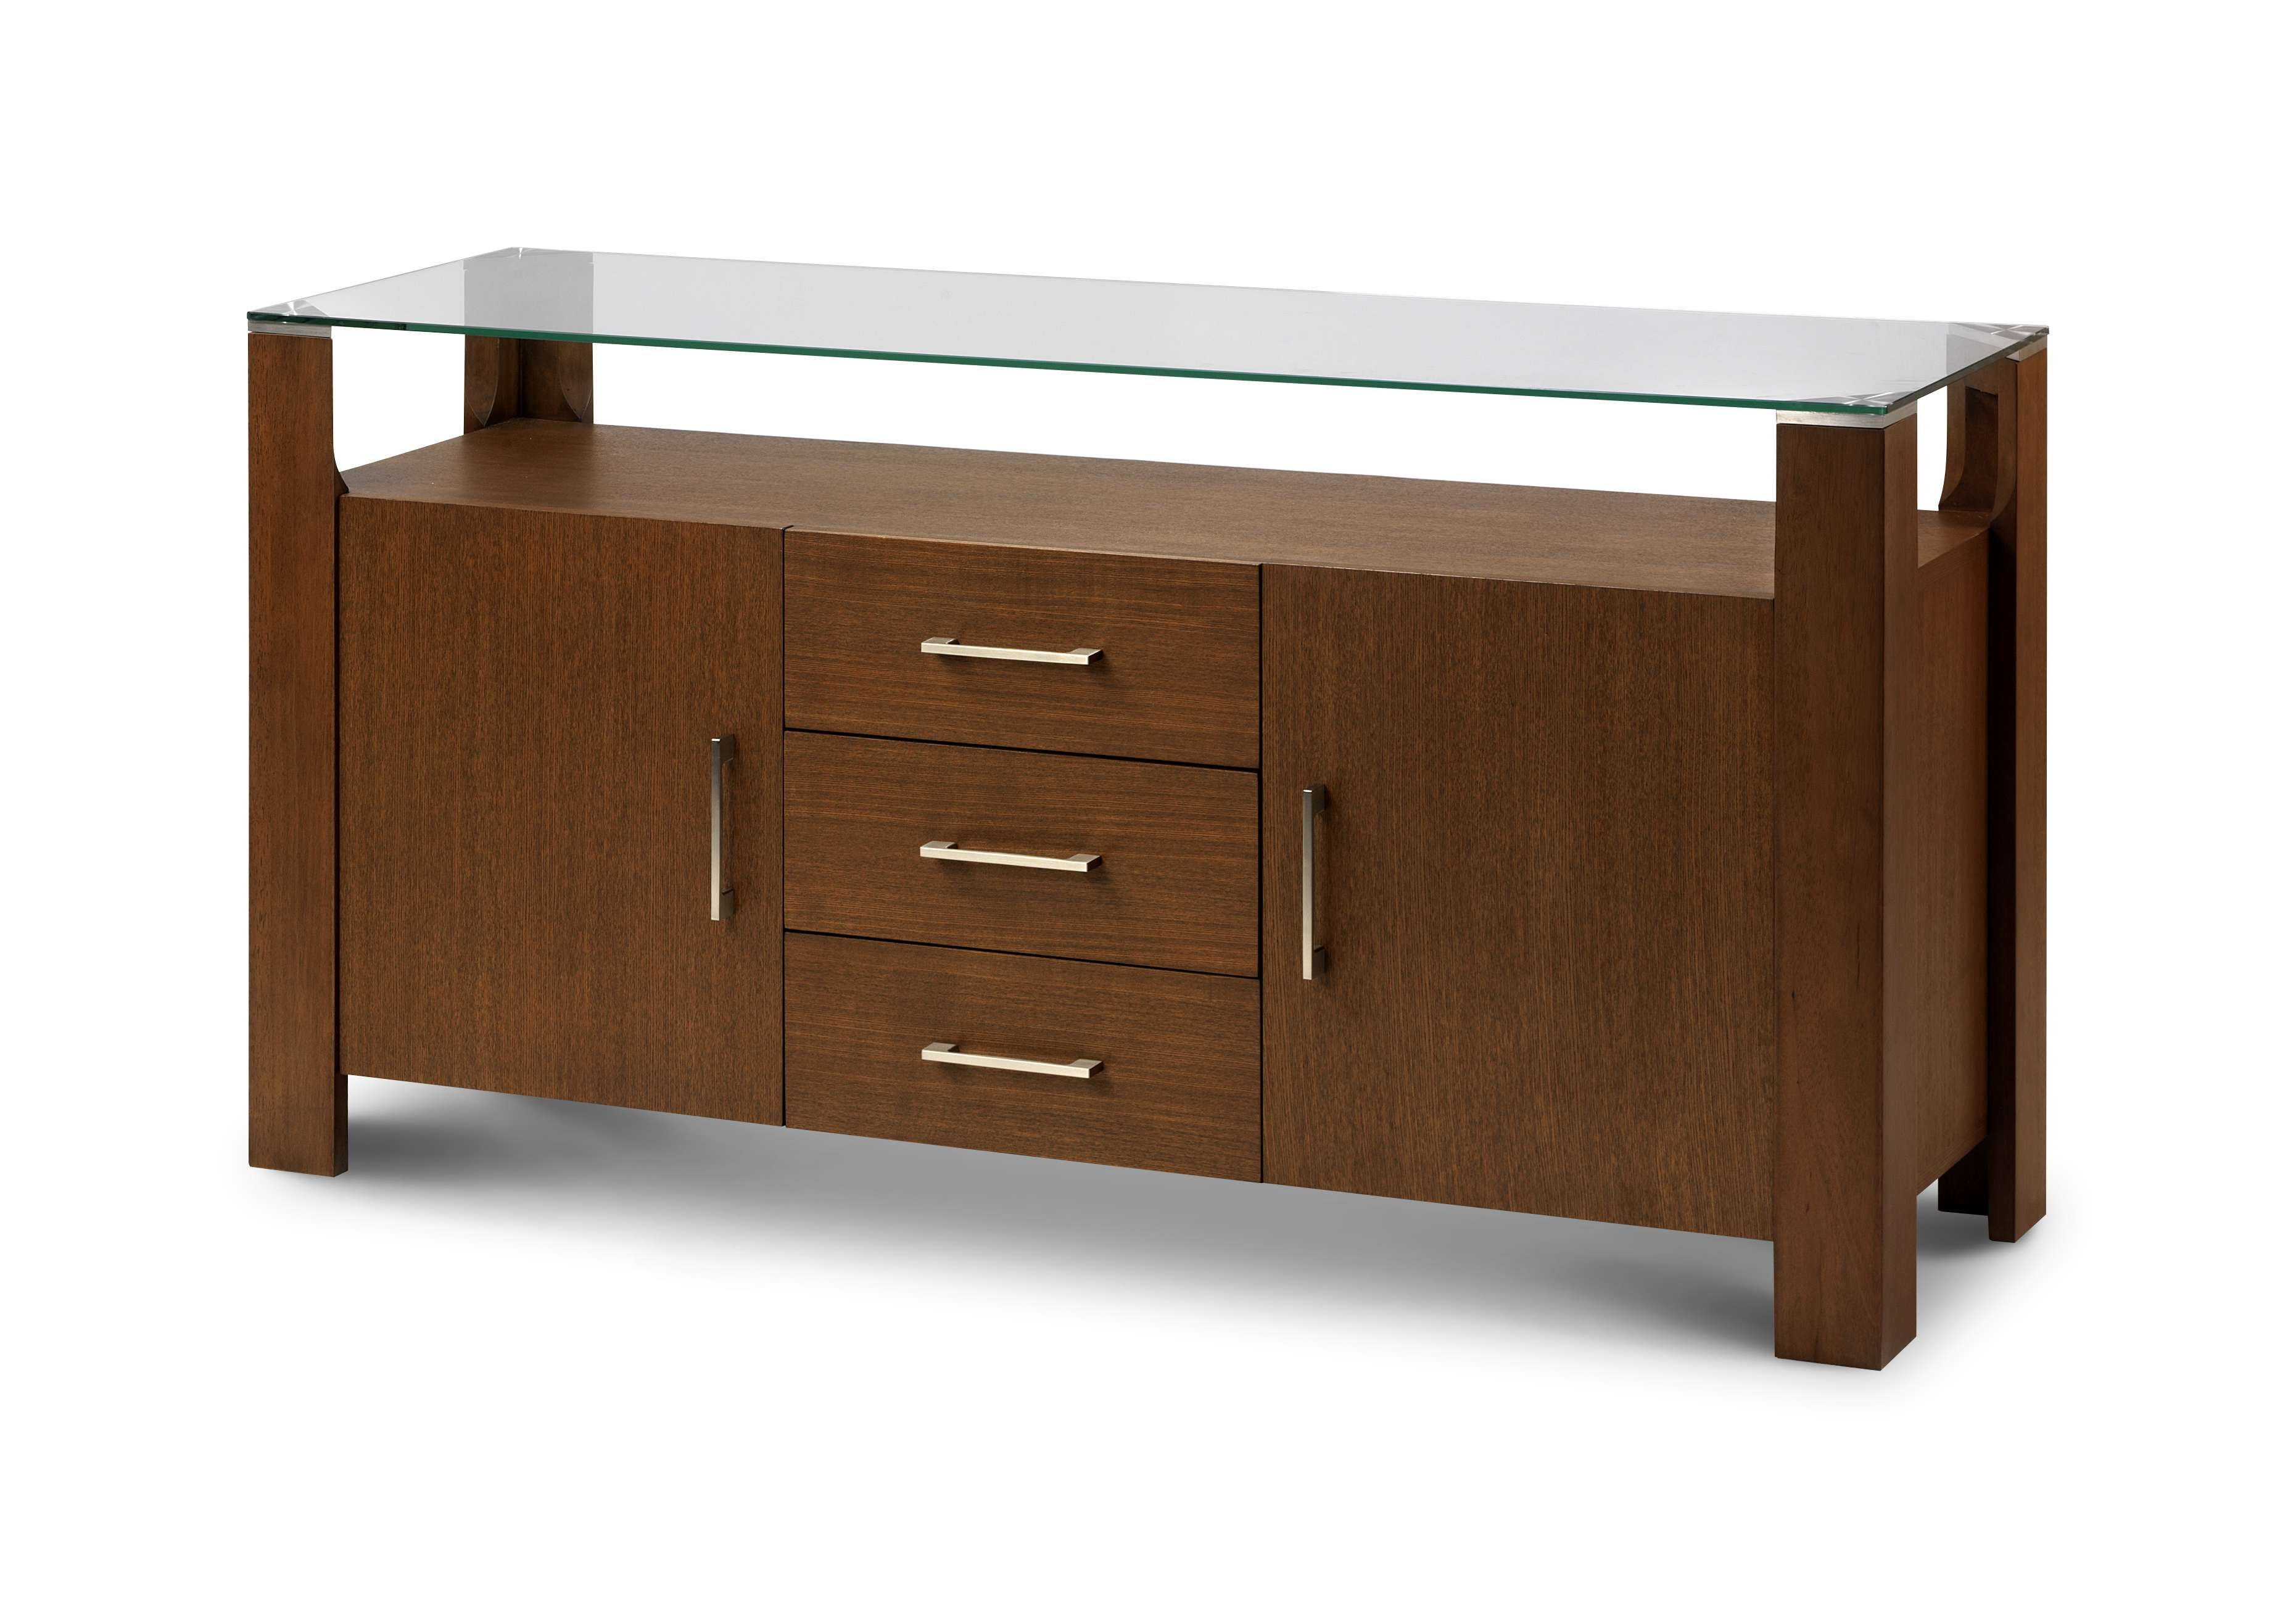 Sideboards And Side Tables > Beds Express > Beds Express Regarding Sideboards Tables (View 15 of 20)